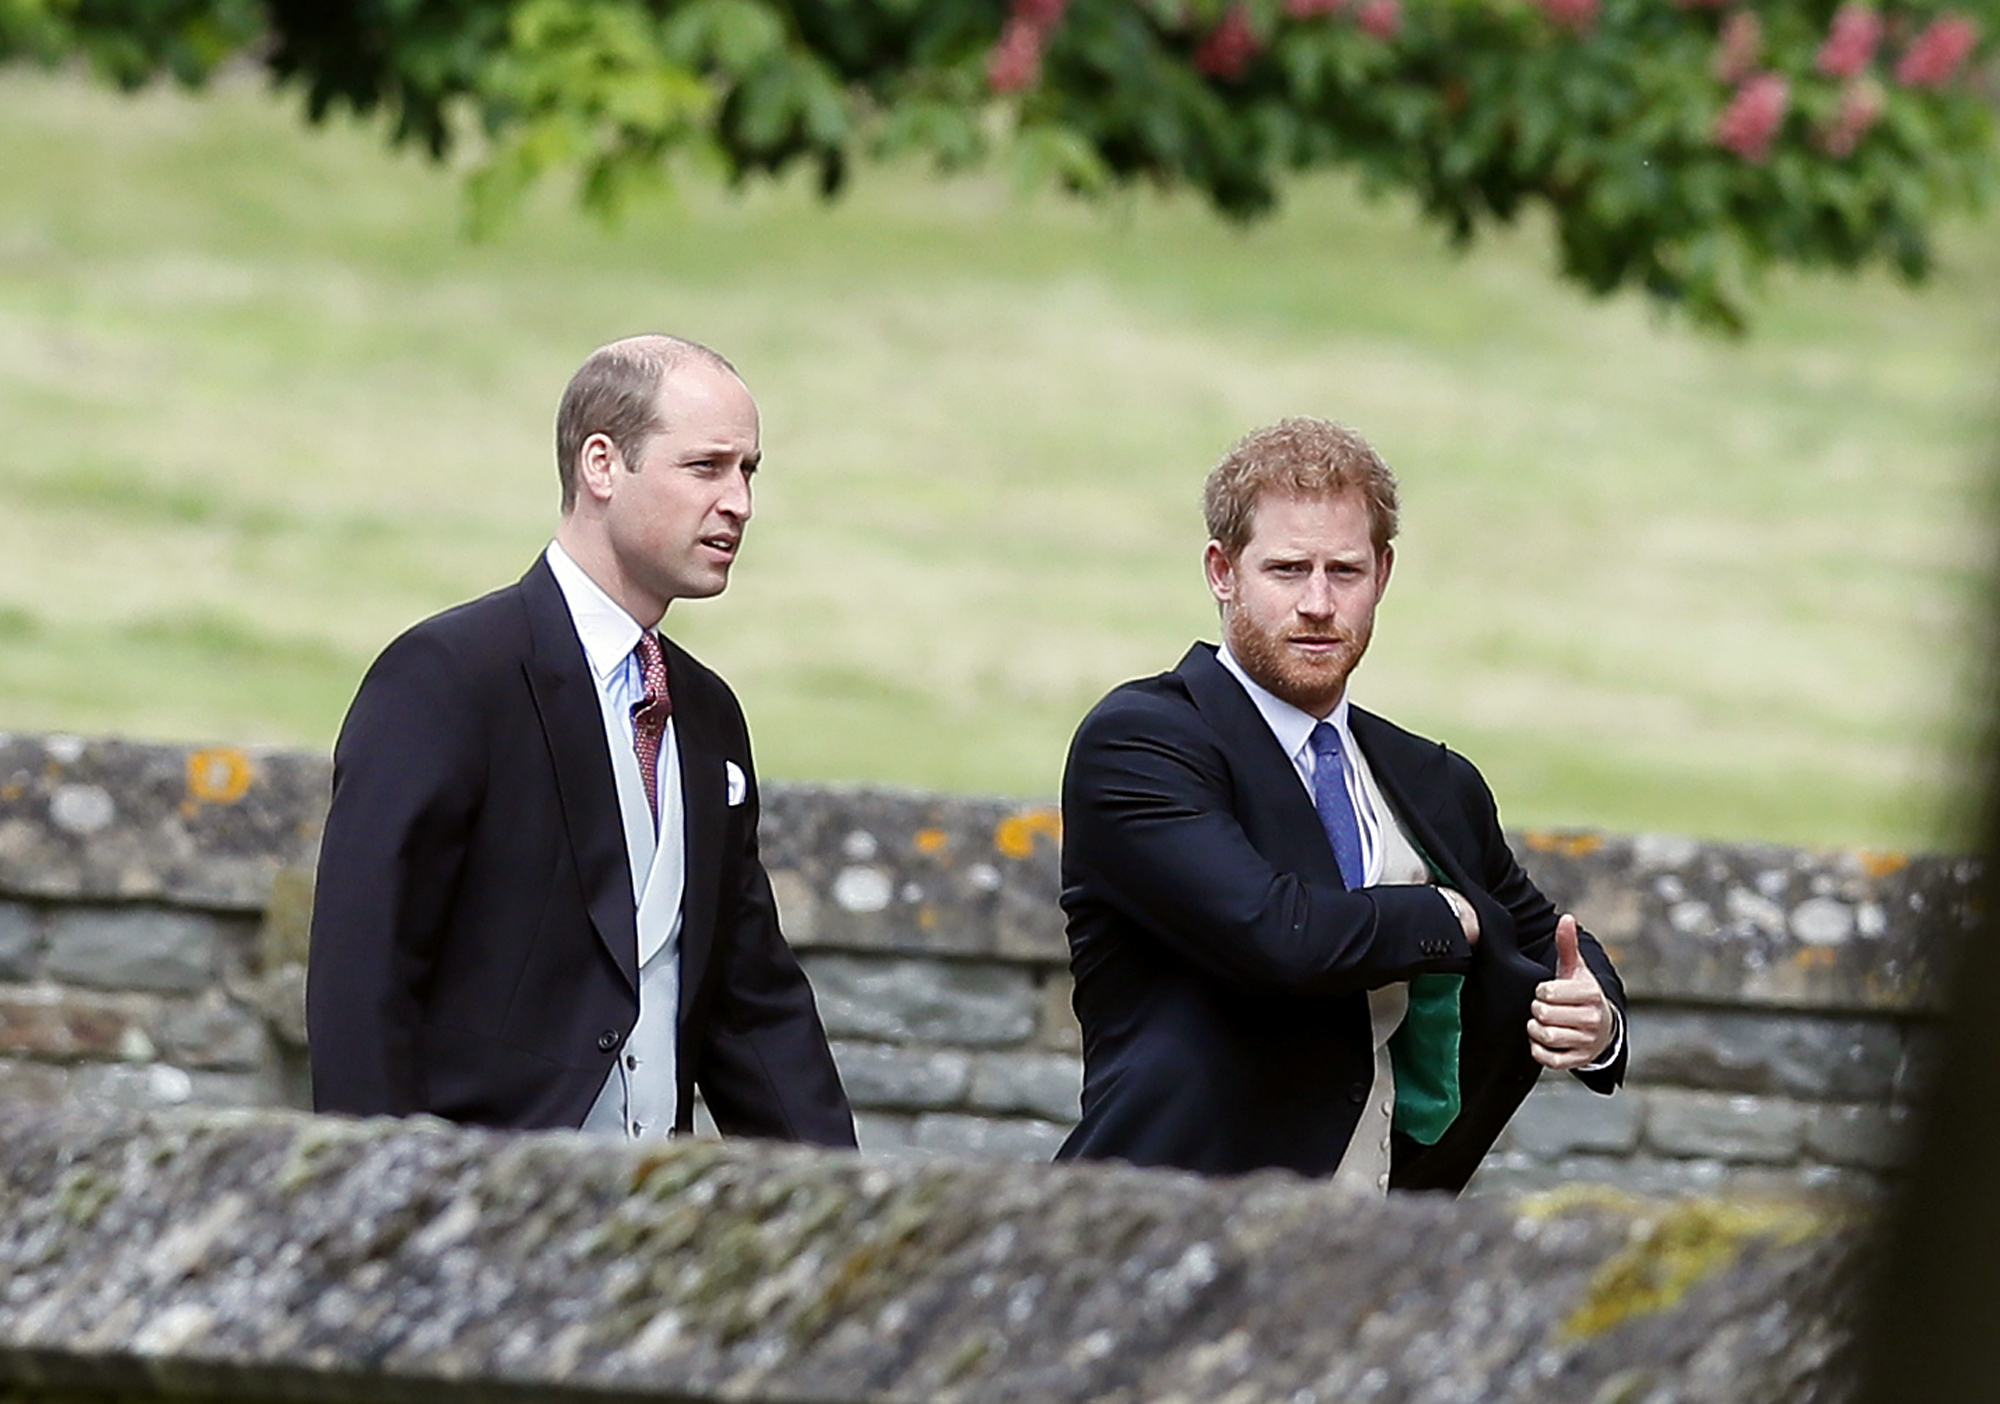 Britain's Prince William and his brother Prince Harry arrive for the wedding of Pippa Middleton